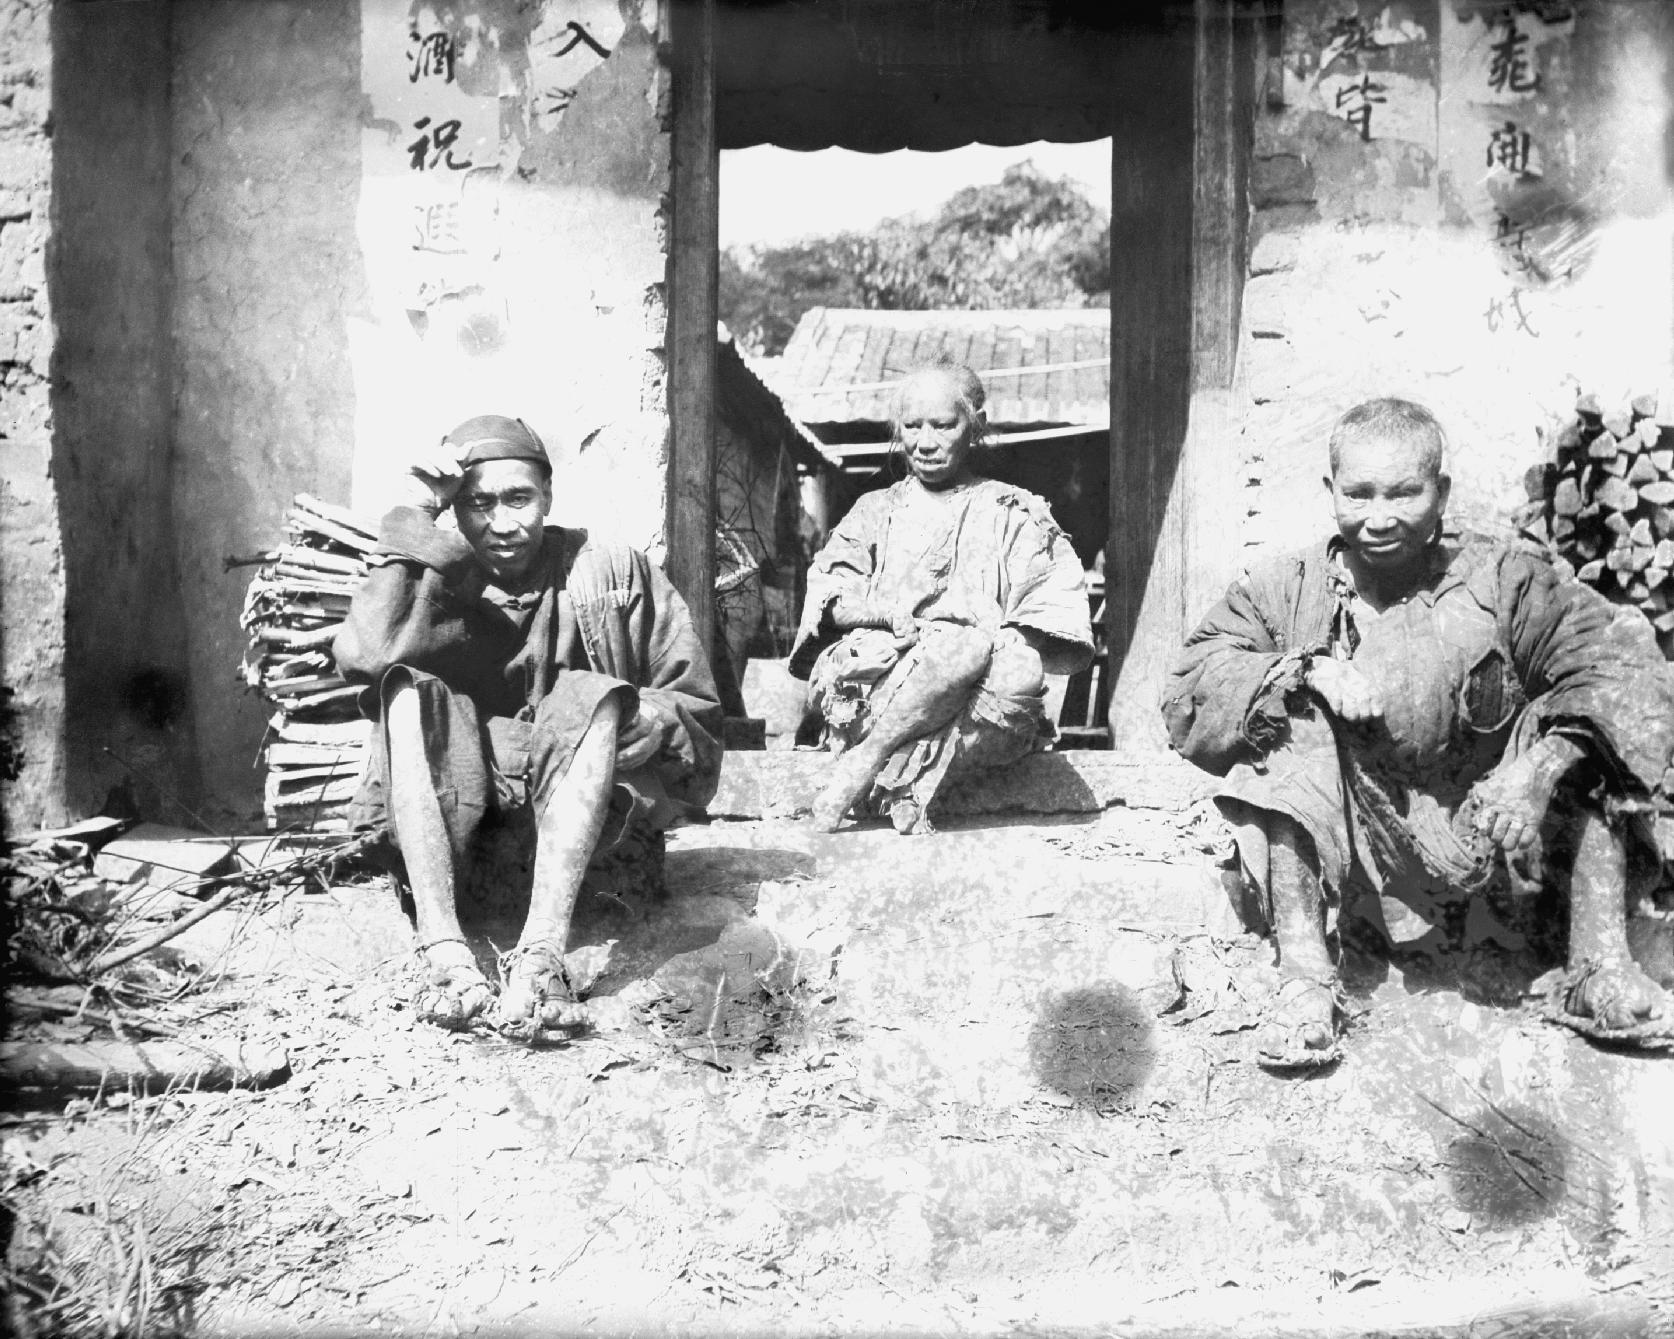 [Lepers at Wang Mu (The Emperor's Mother's Village) 王母 in Yeungkong 陽江].